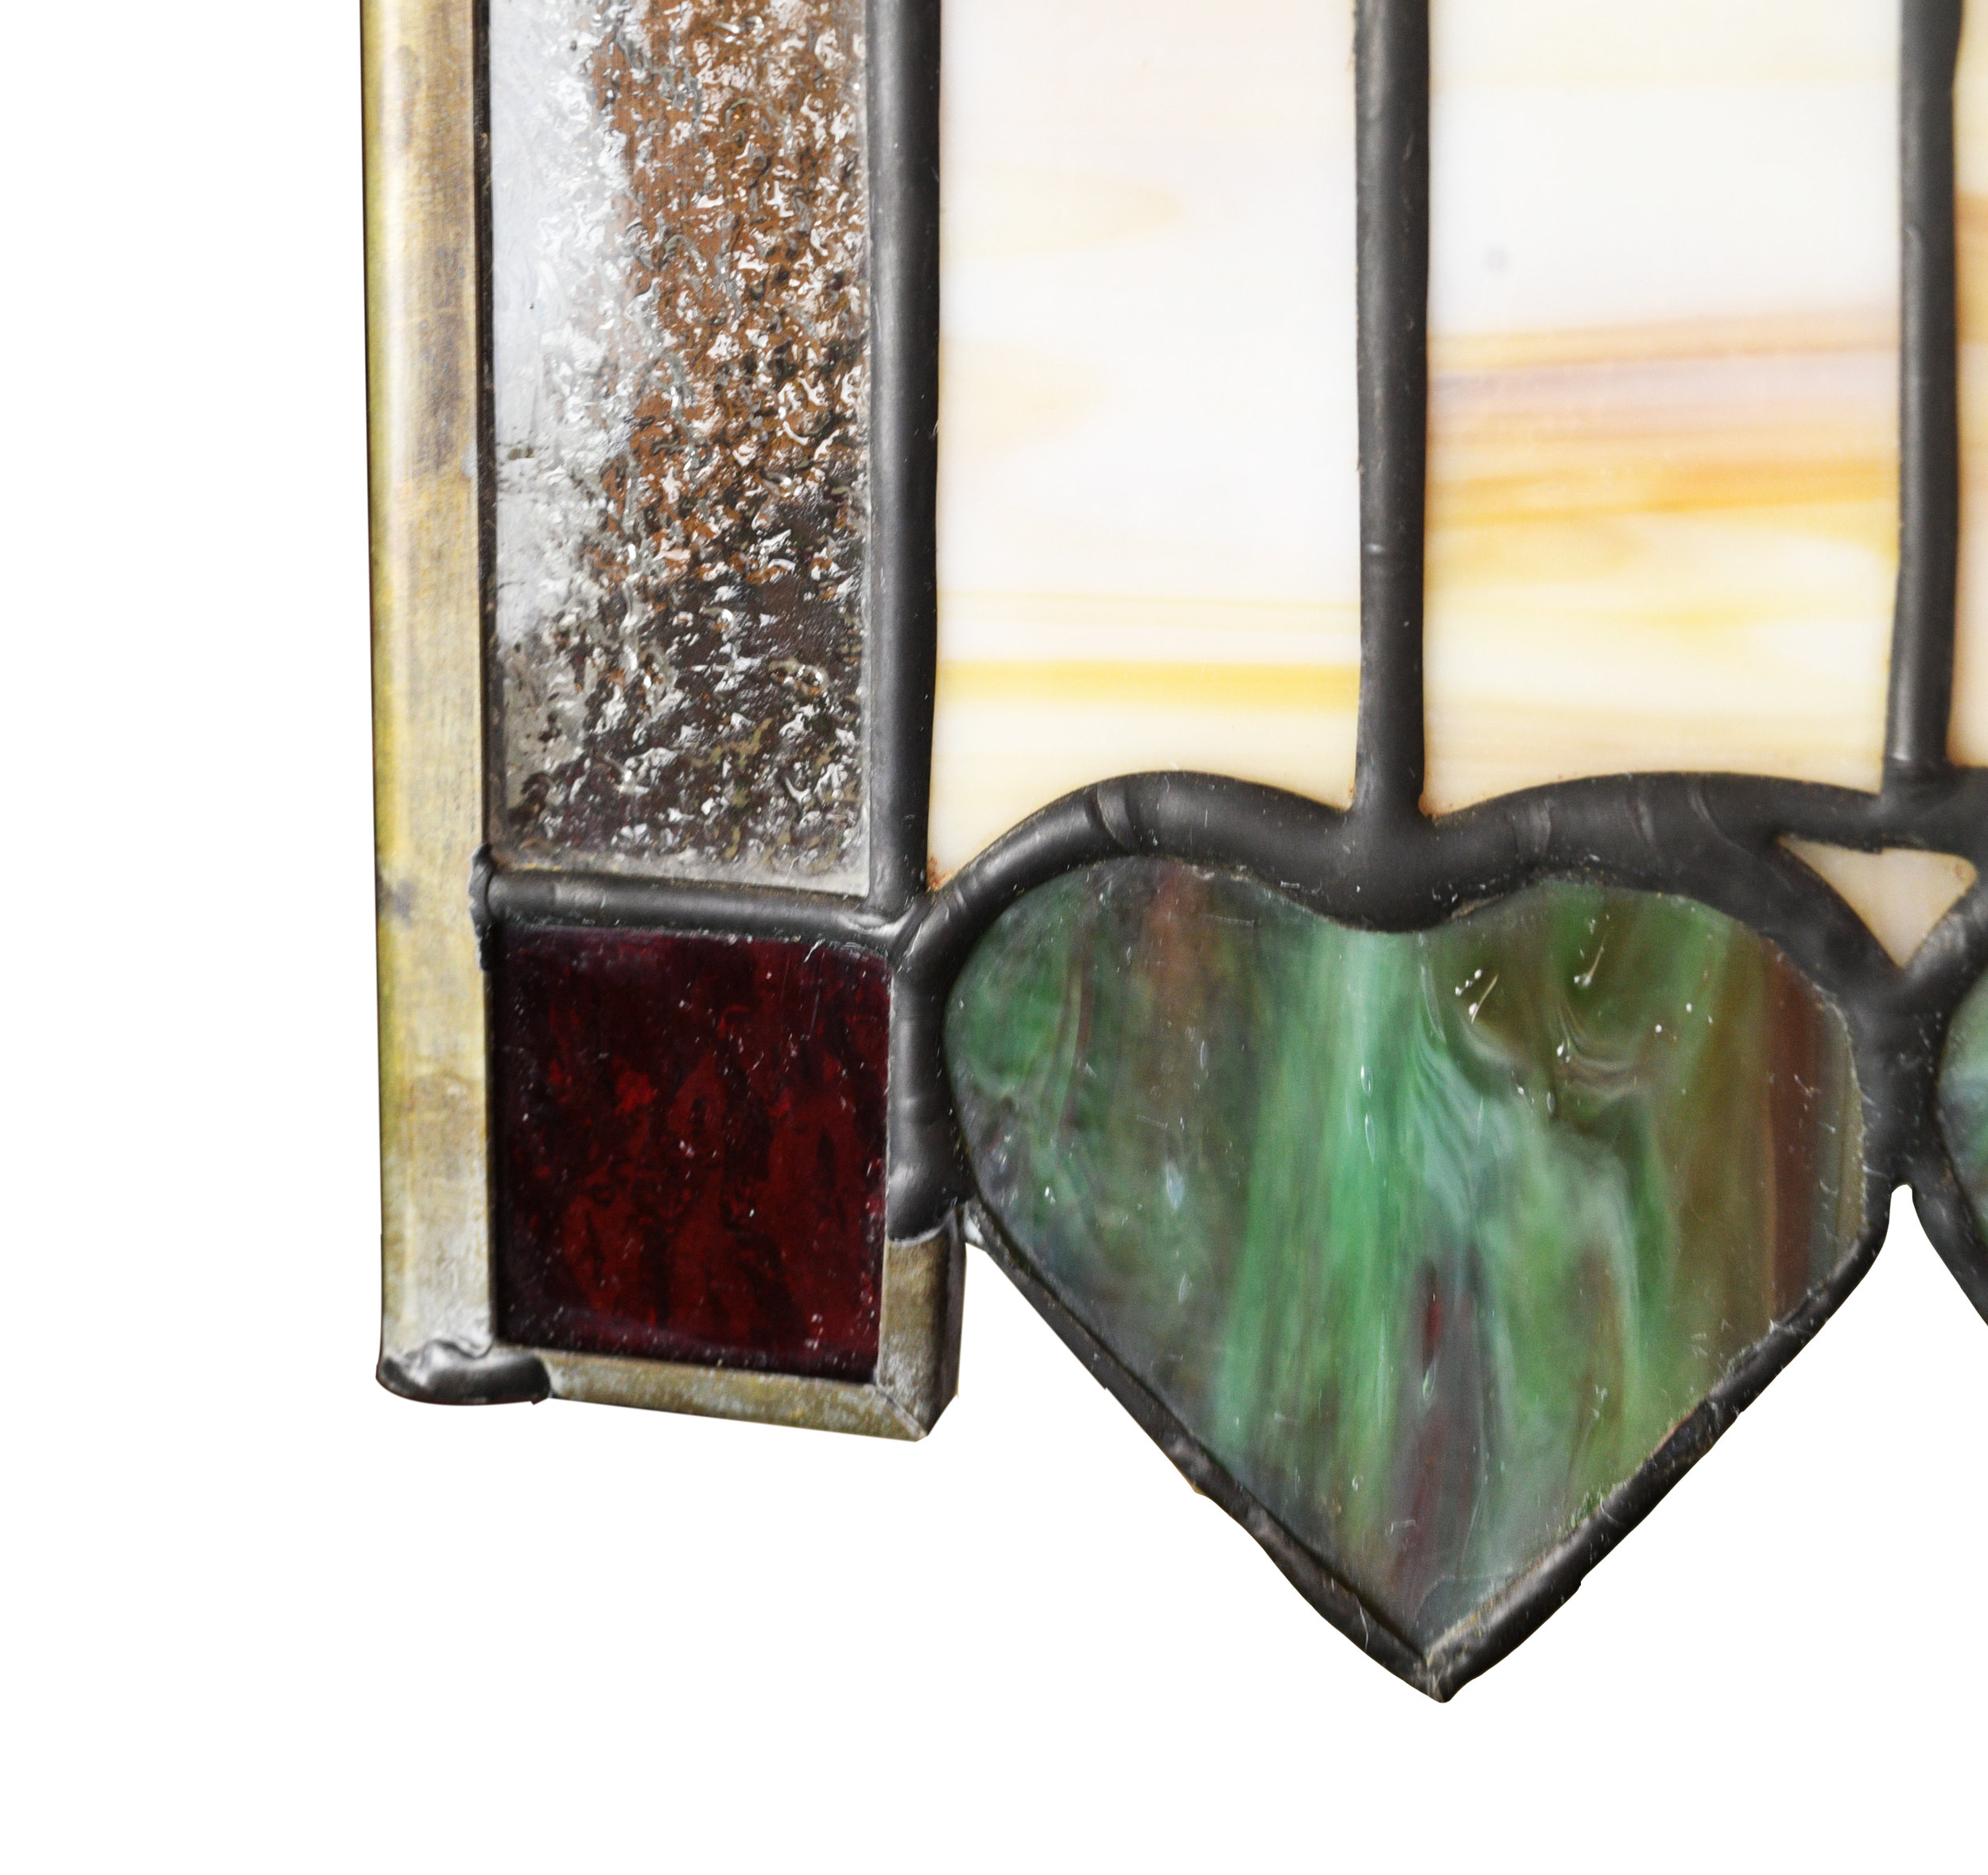 47757-LEADED-GLASS-PENDANT-WITH-HEARTS-12.jpg